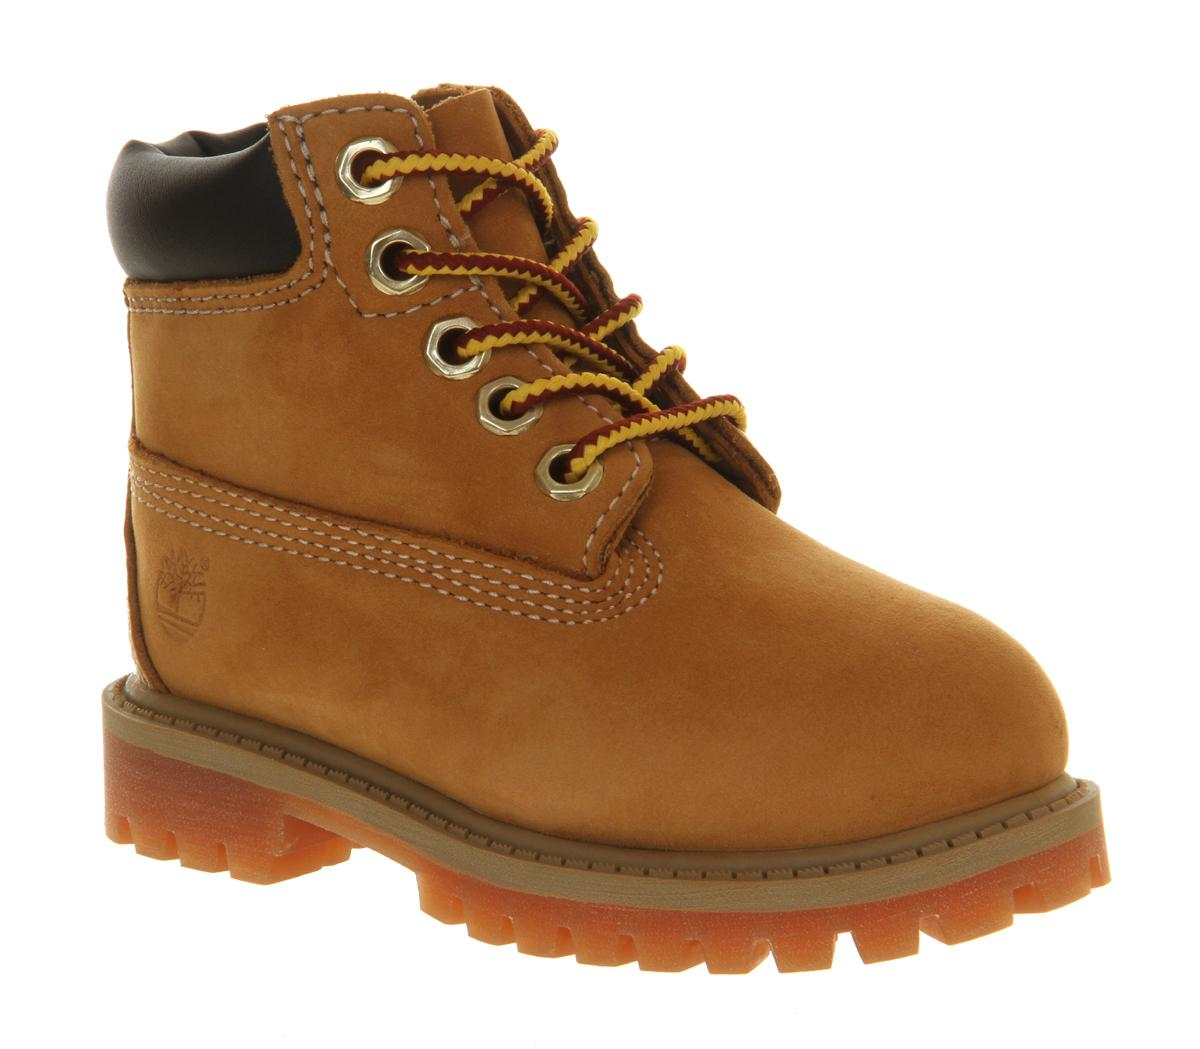 6 Inch Classic Boots Infant